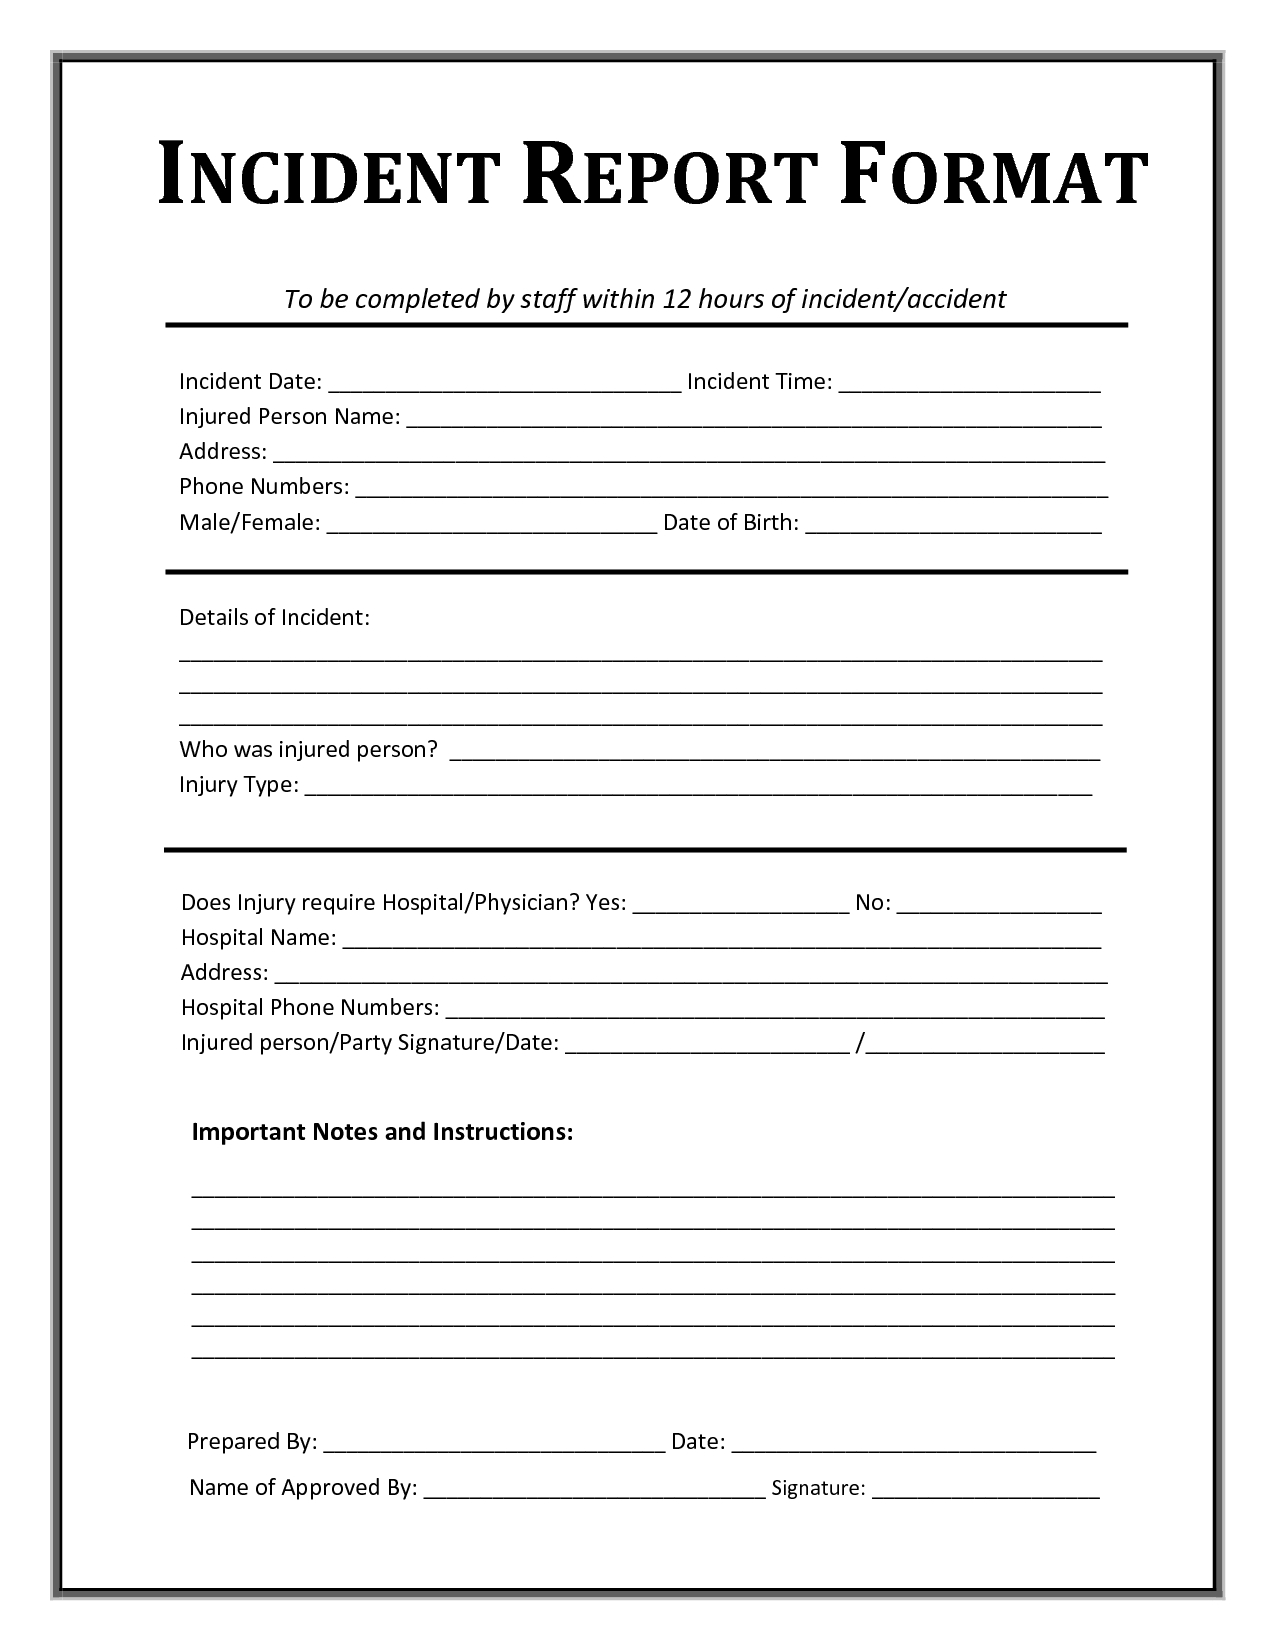 Incident Report Form Template Microsoft Excel  Report Templates Intended For Incident Report Template Microsoft